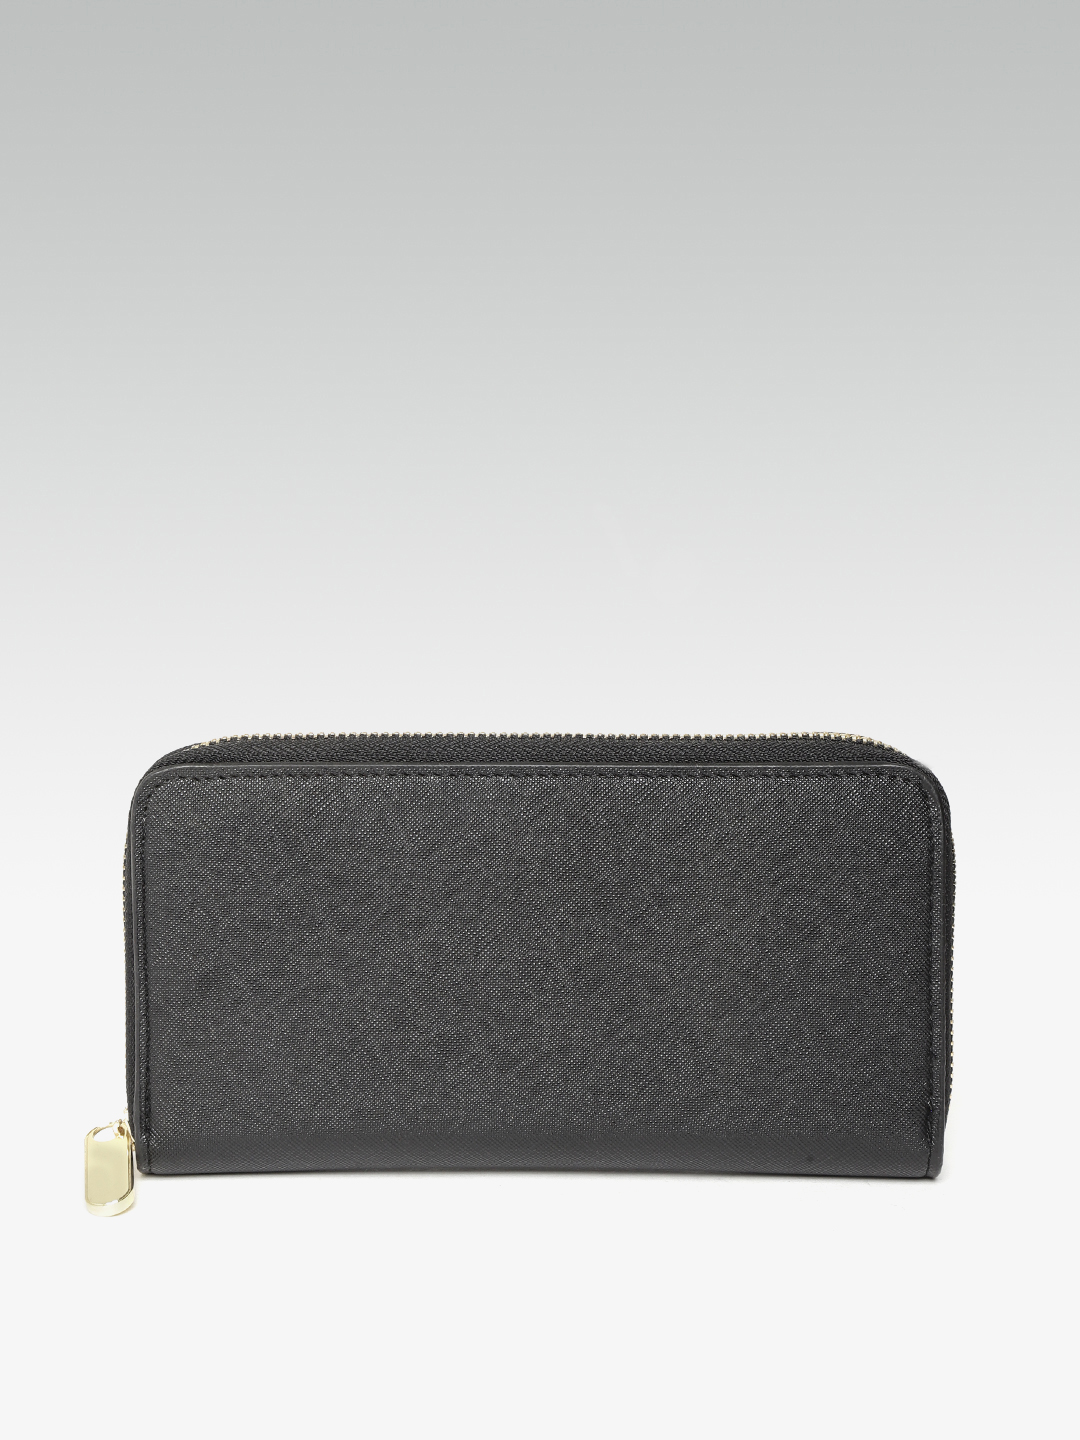 Wallets and Makeup Pouches-Sticking To the Classics Black Wallet1